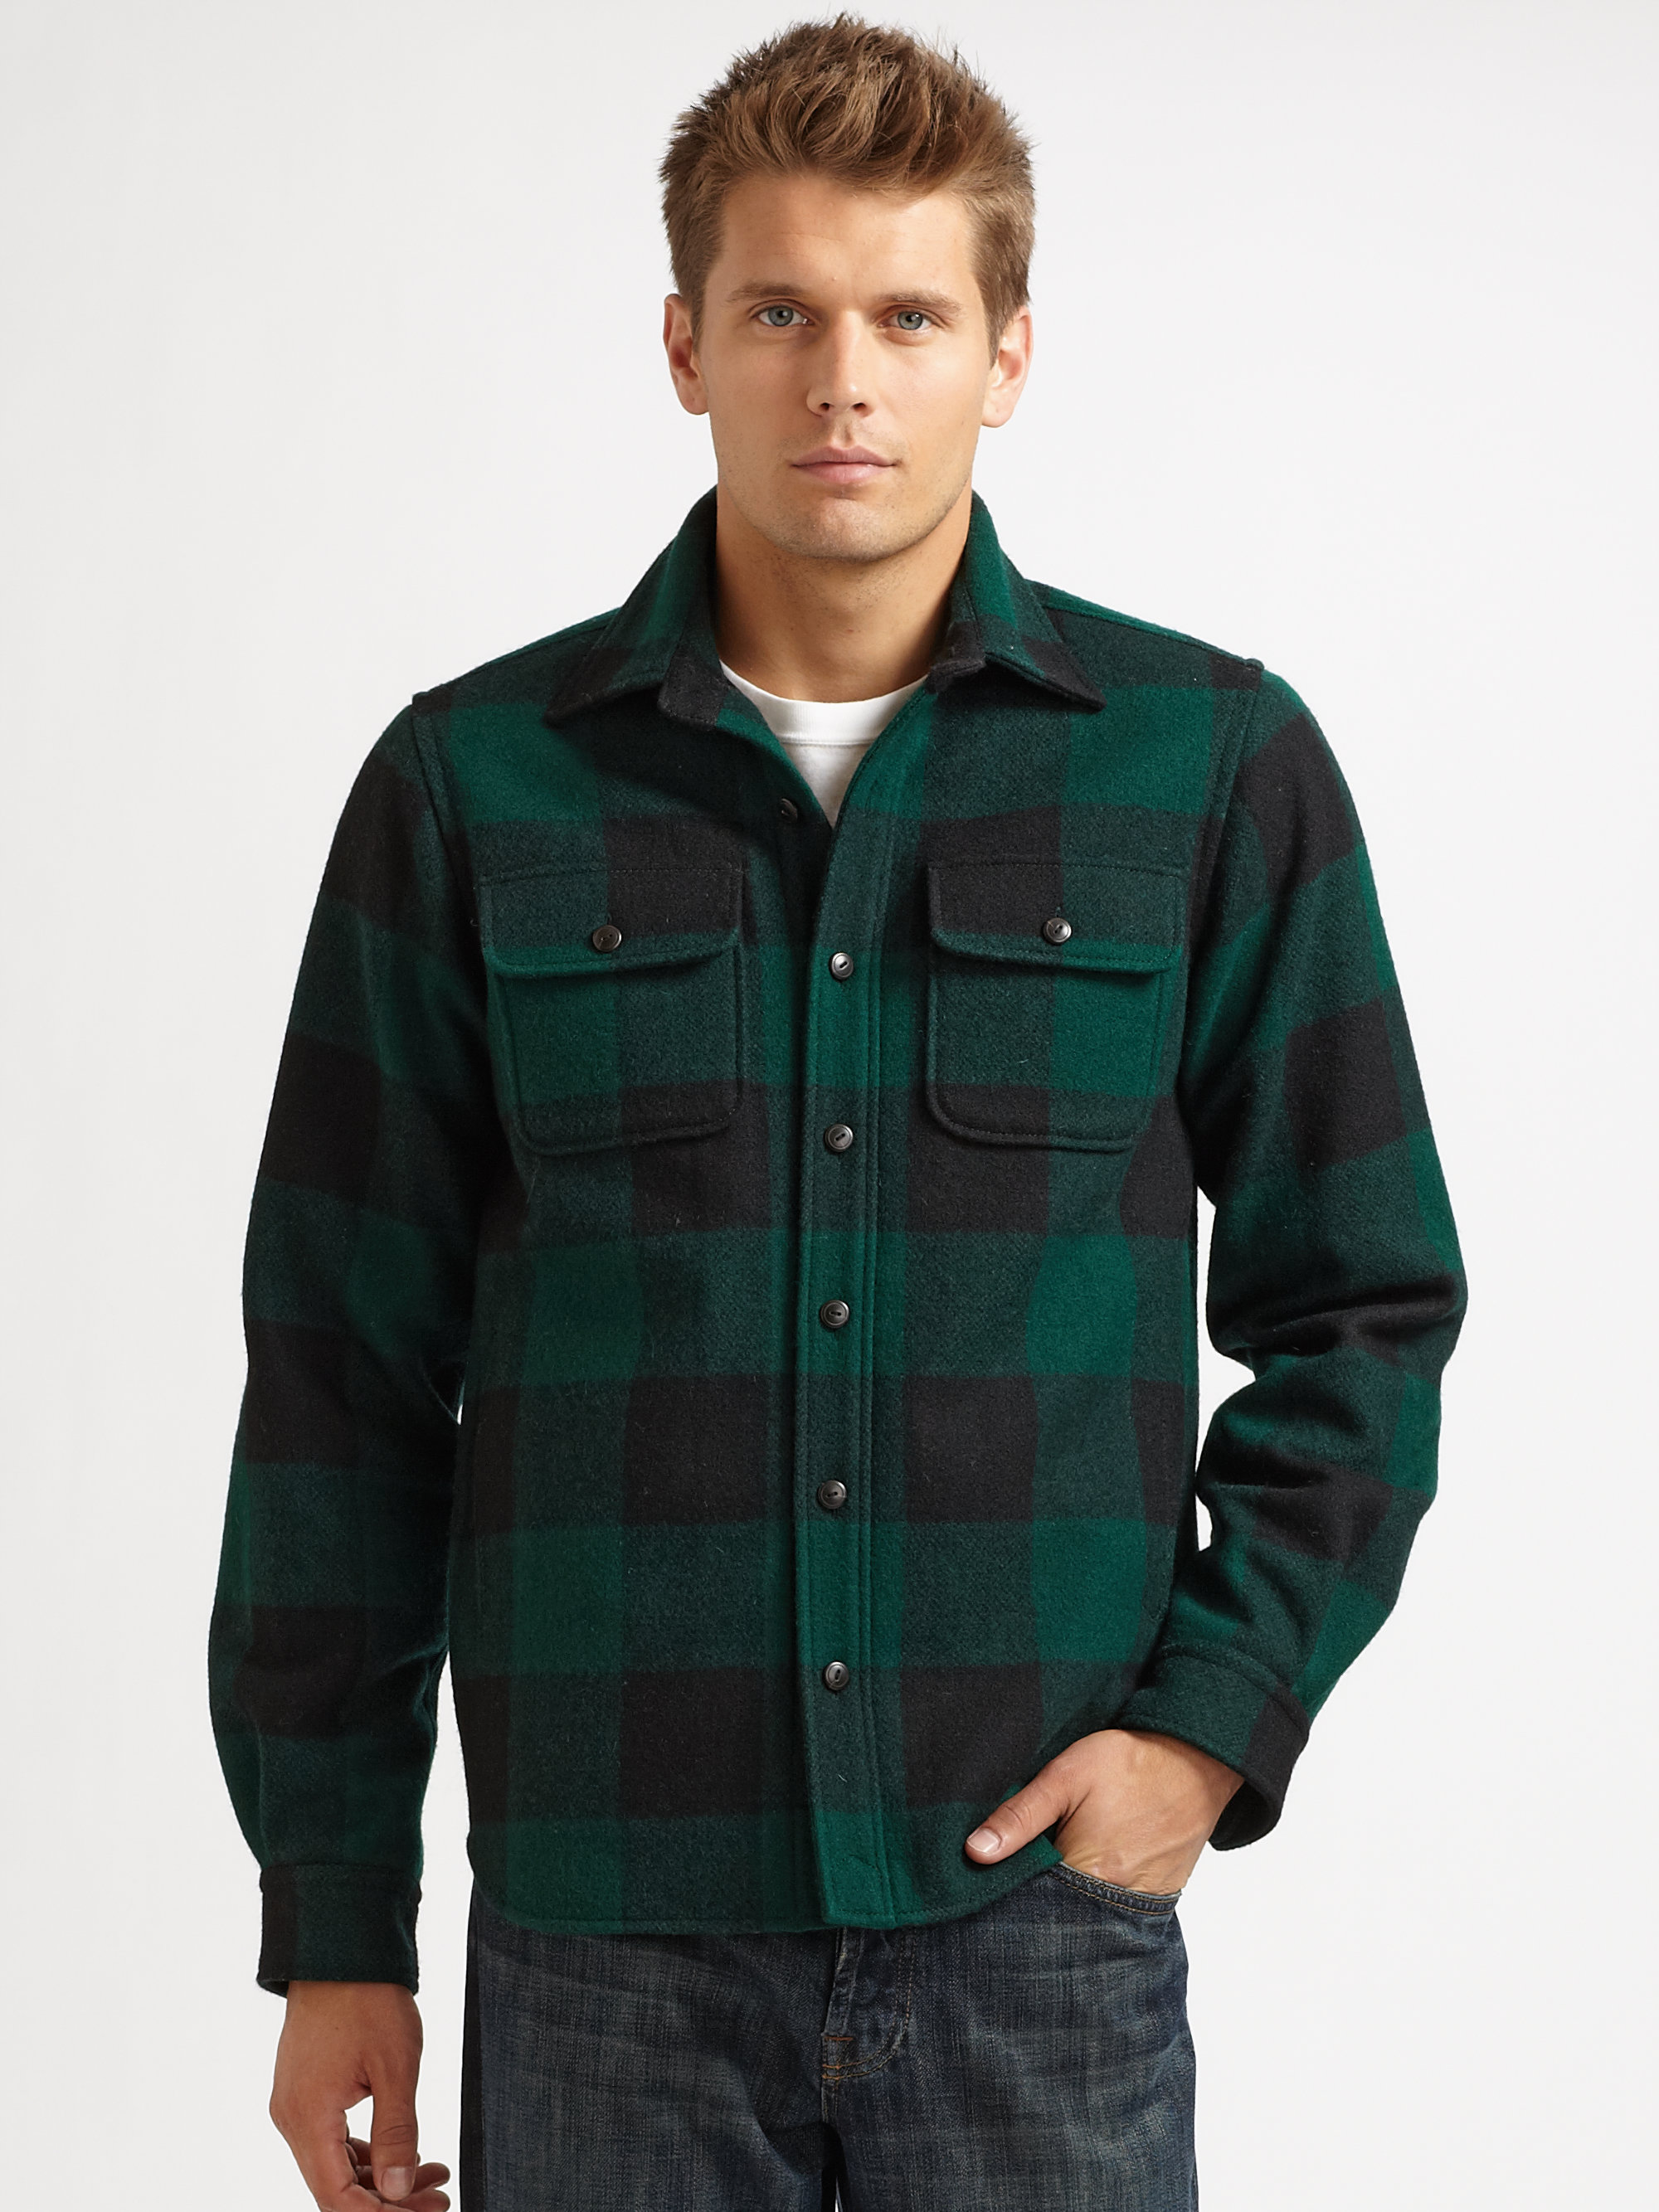 Elizabeth and james Wool Check Shirt Jacket in Green for Men | Lyst